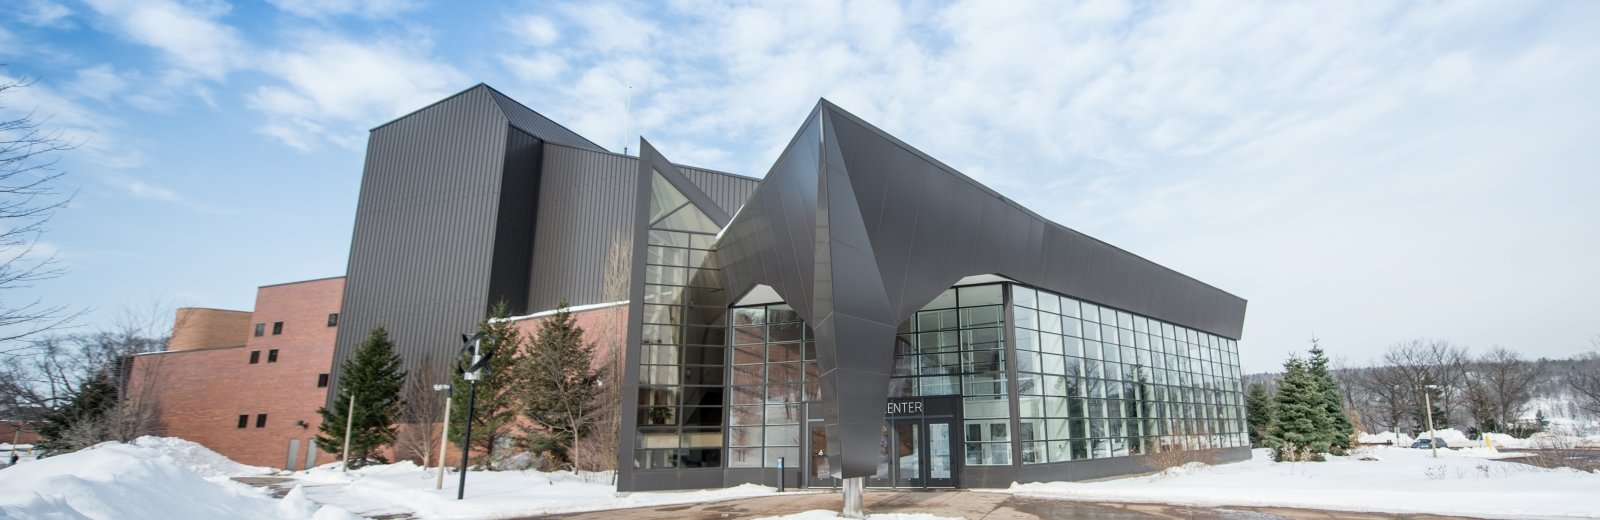 The Rozsa Center for the Performing Arts